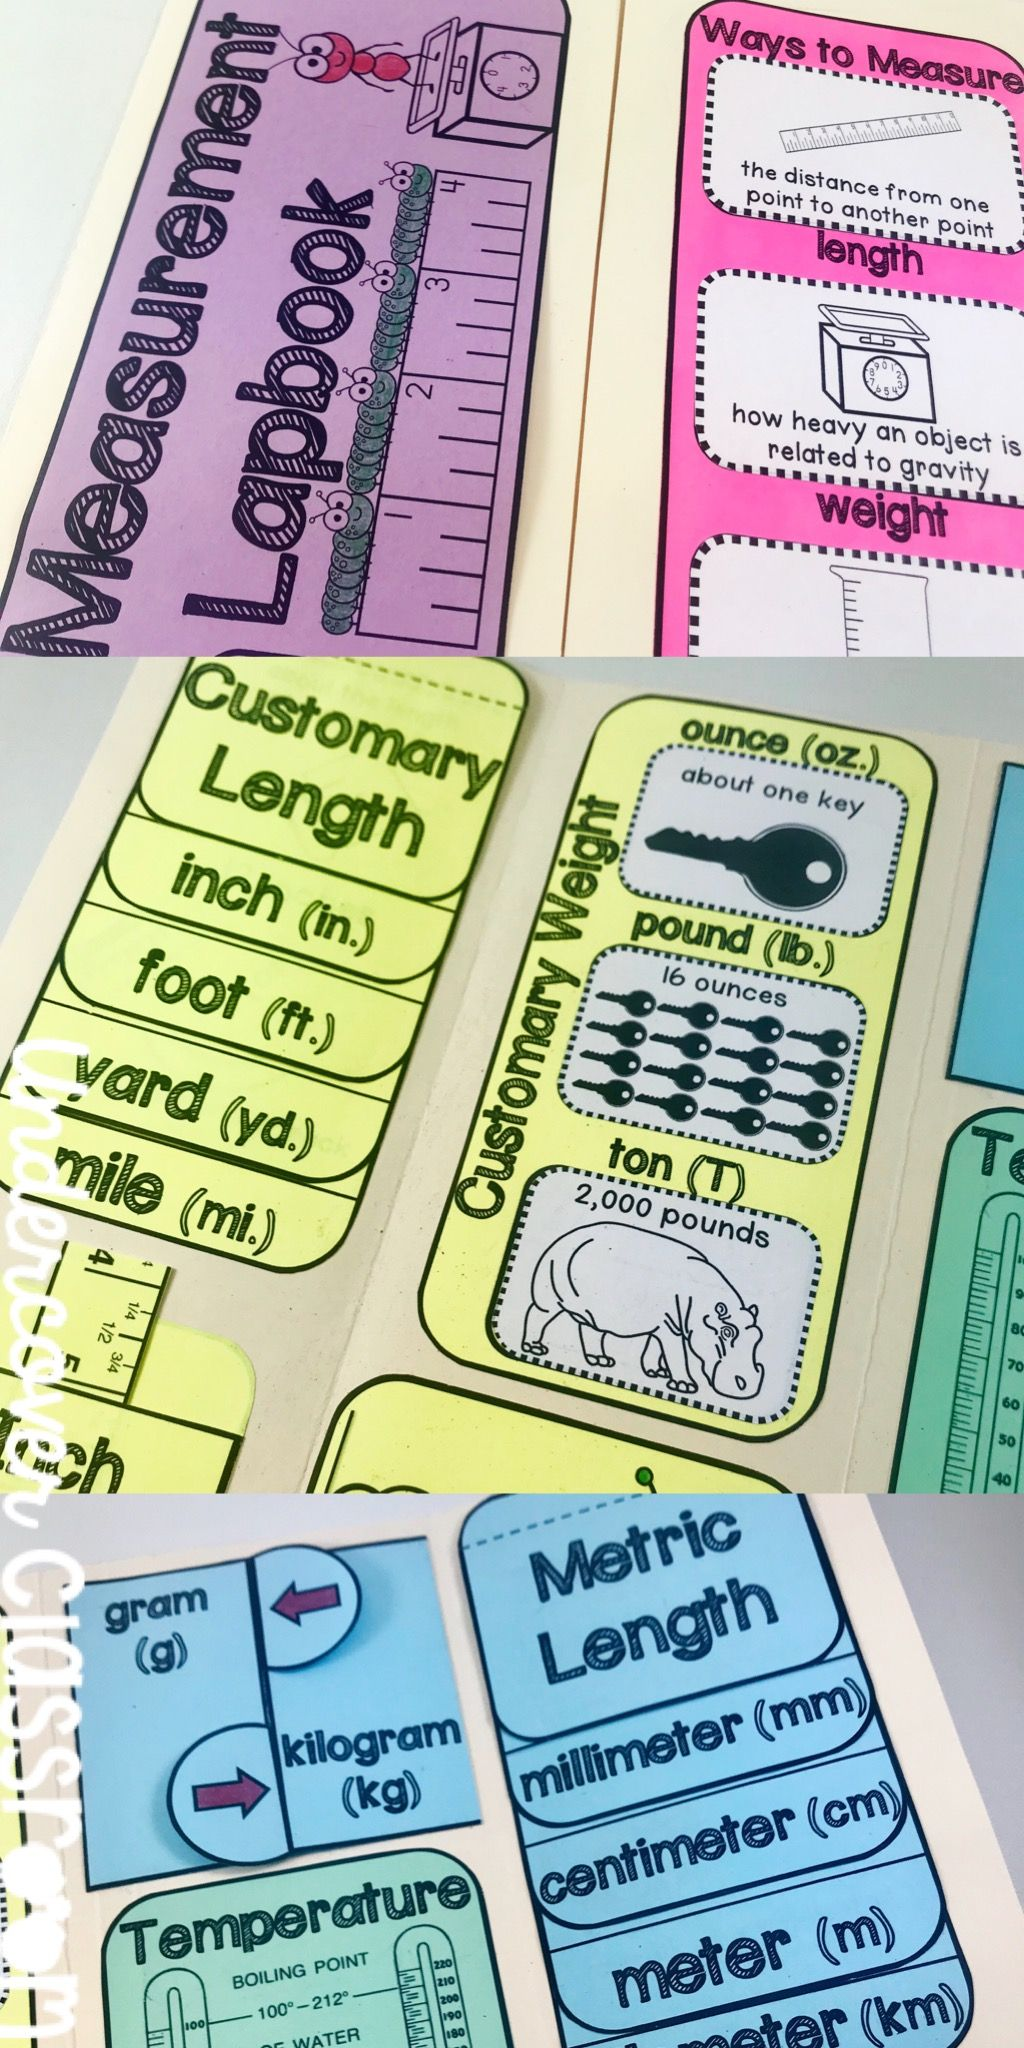 Teach Customary And Metric Measurement With This Lapbook All The Units Of Measurement Are Included In One Fil Math Worksheets Measurement Activities Free Math [ 2048 x 1024 Pixel ]